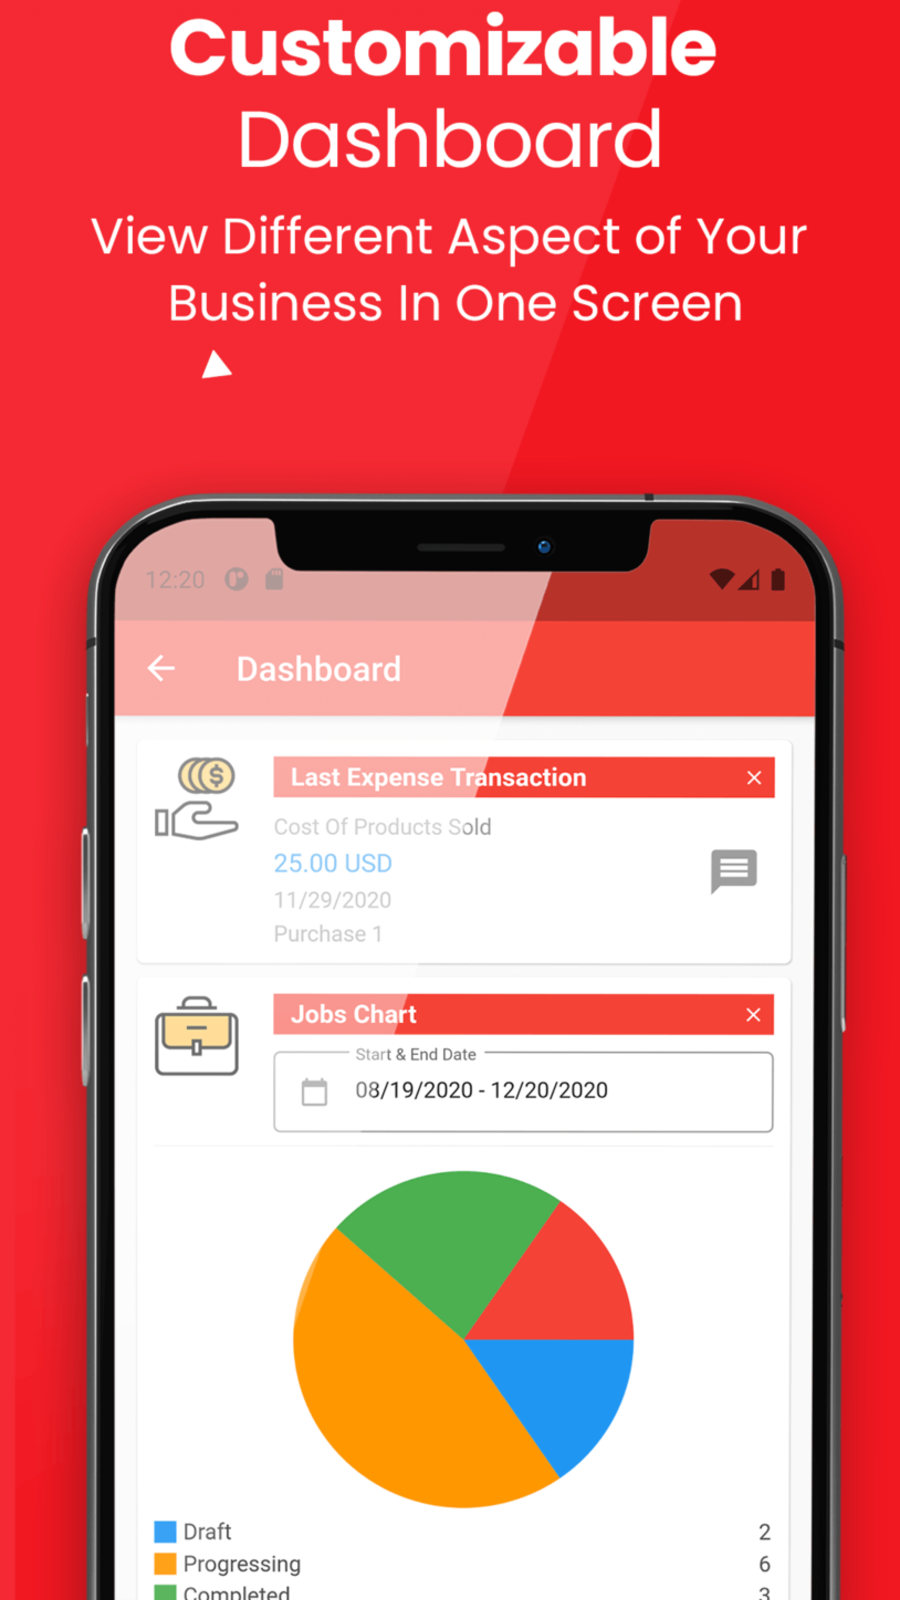 Watch your business closely. Fun to use customizable Dashboard